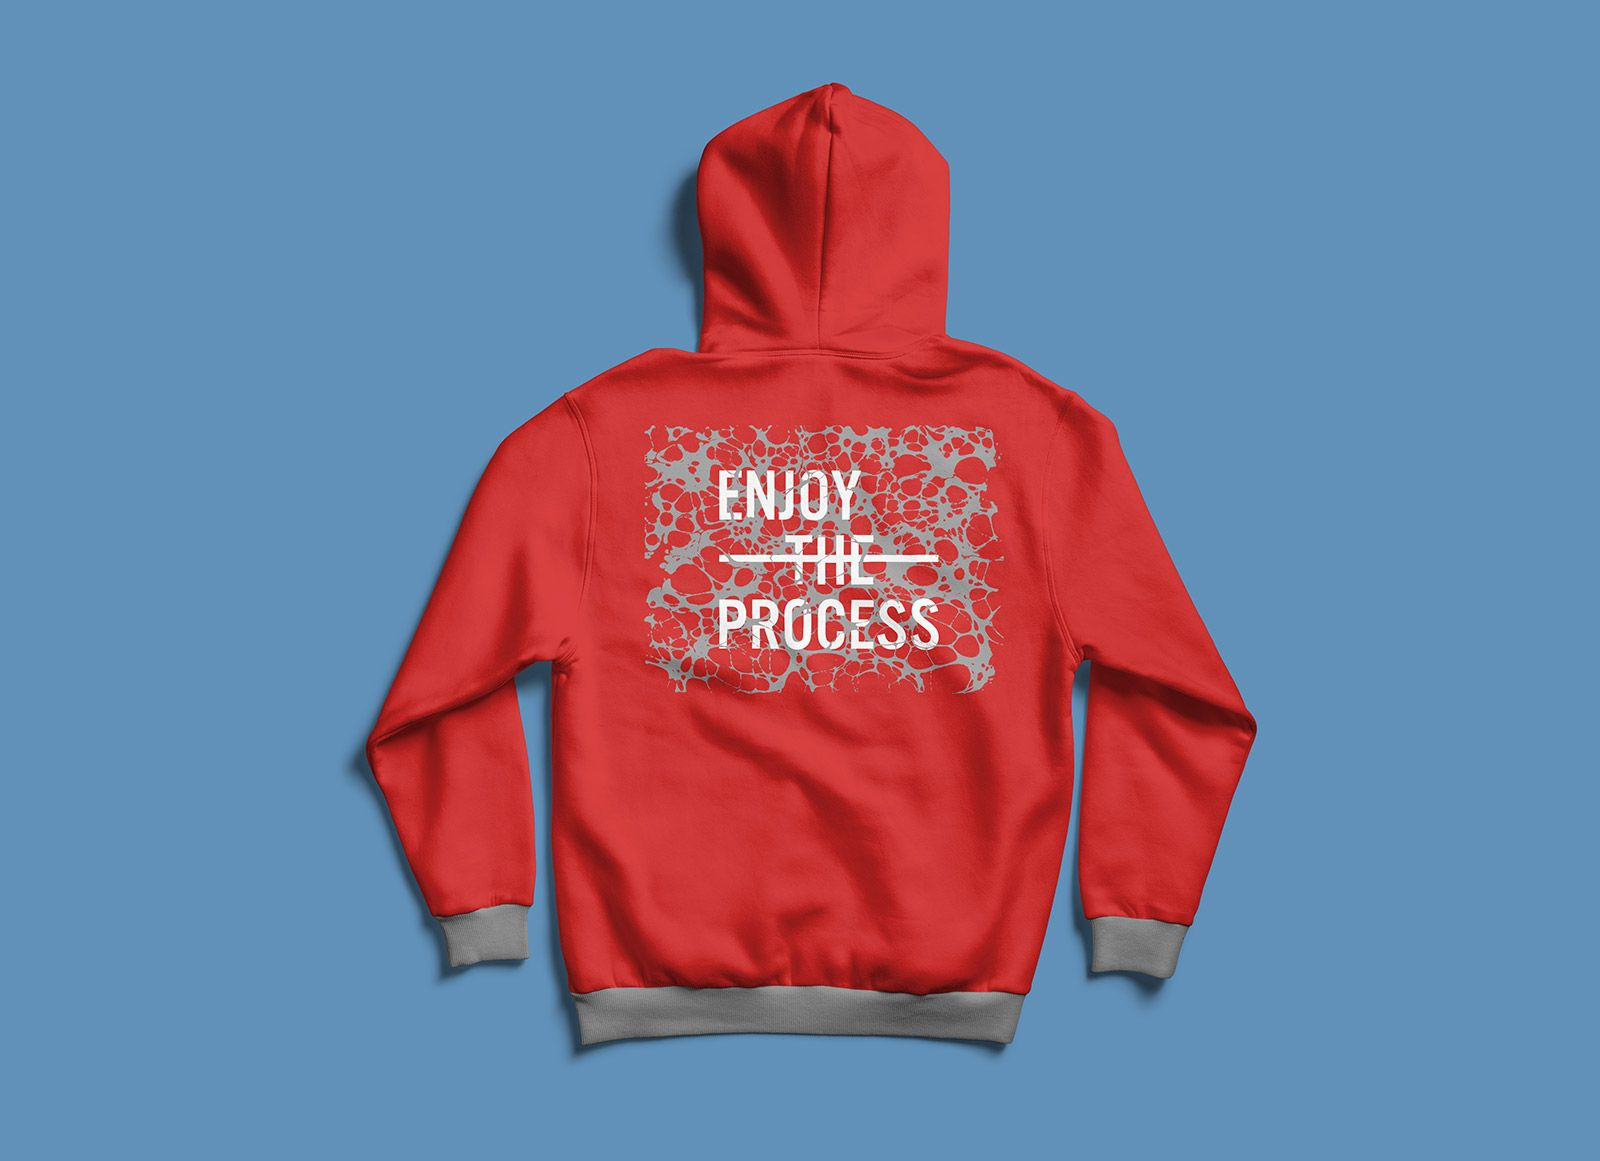 Download A High Quality With Detailed Image Depth Full Sleeves Hoodie Mockup With Front And Backside Psd There Are Few Customization Hoodies Shirt Mockup Hoodie Mockup